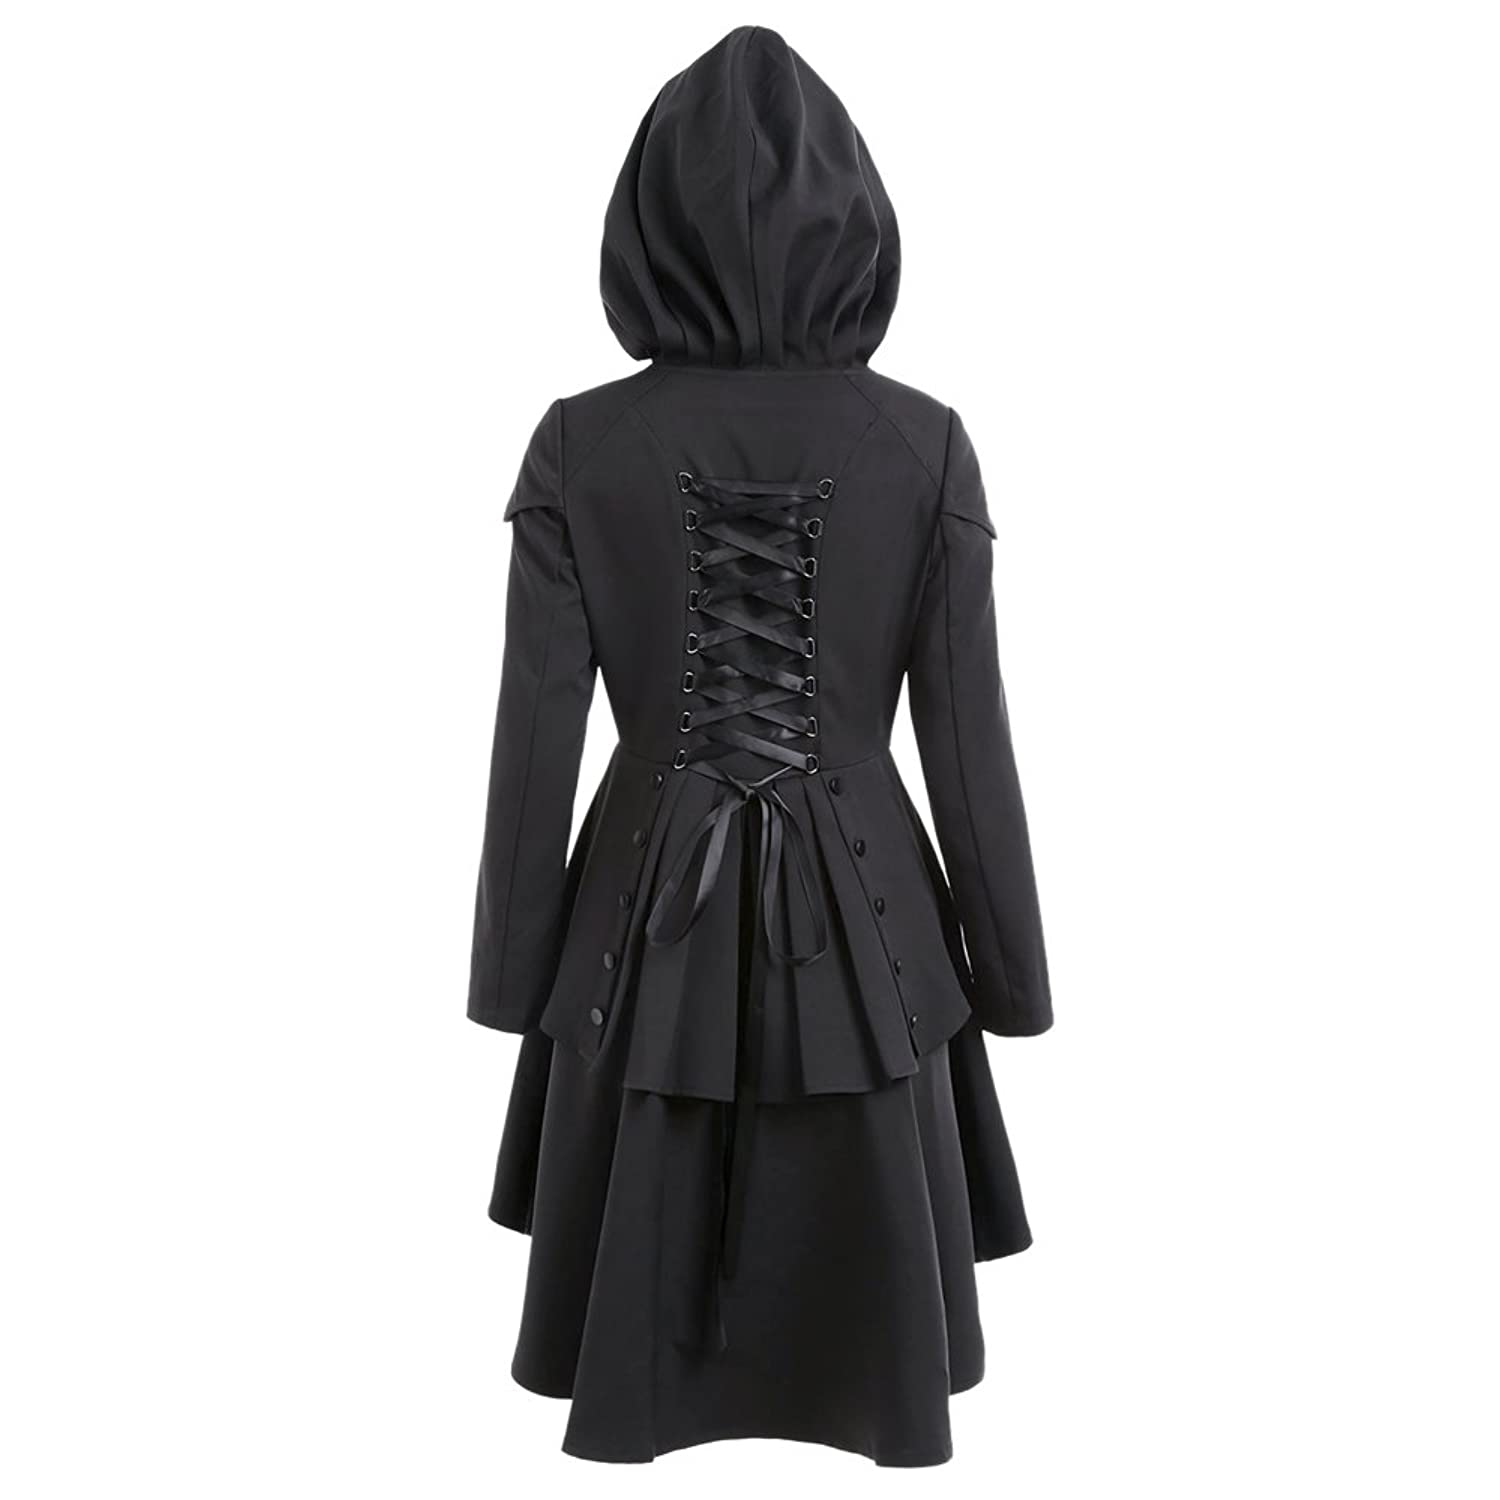 CharMma Women's Casual Single Breasted High Low Hem Lace Up Layered Hooded Coat